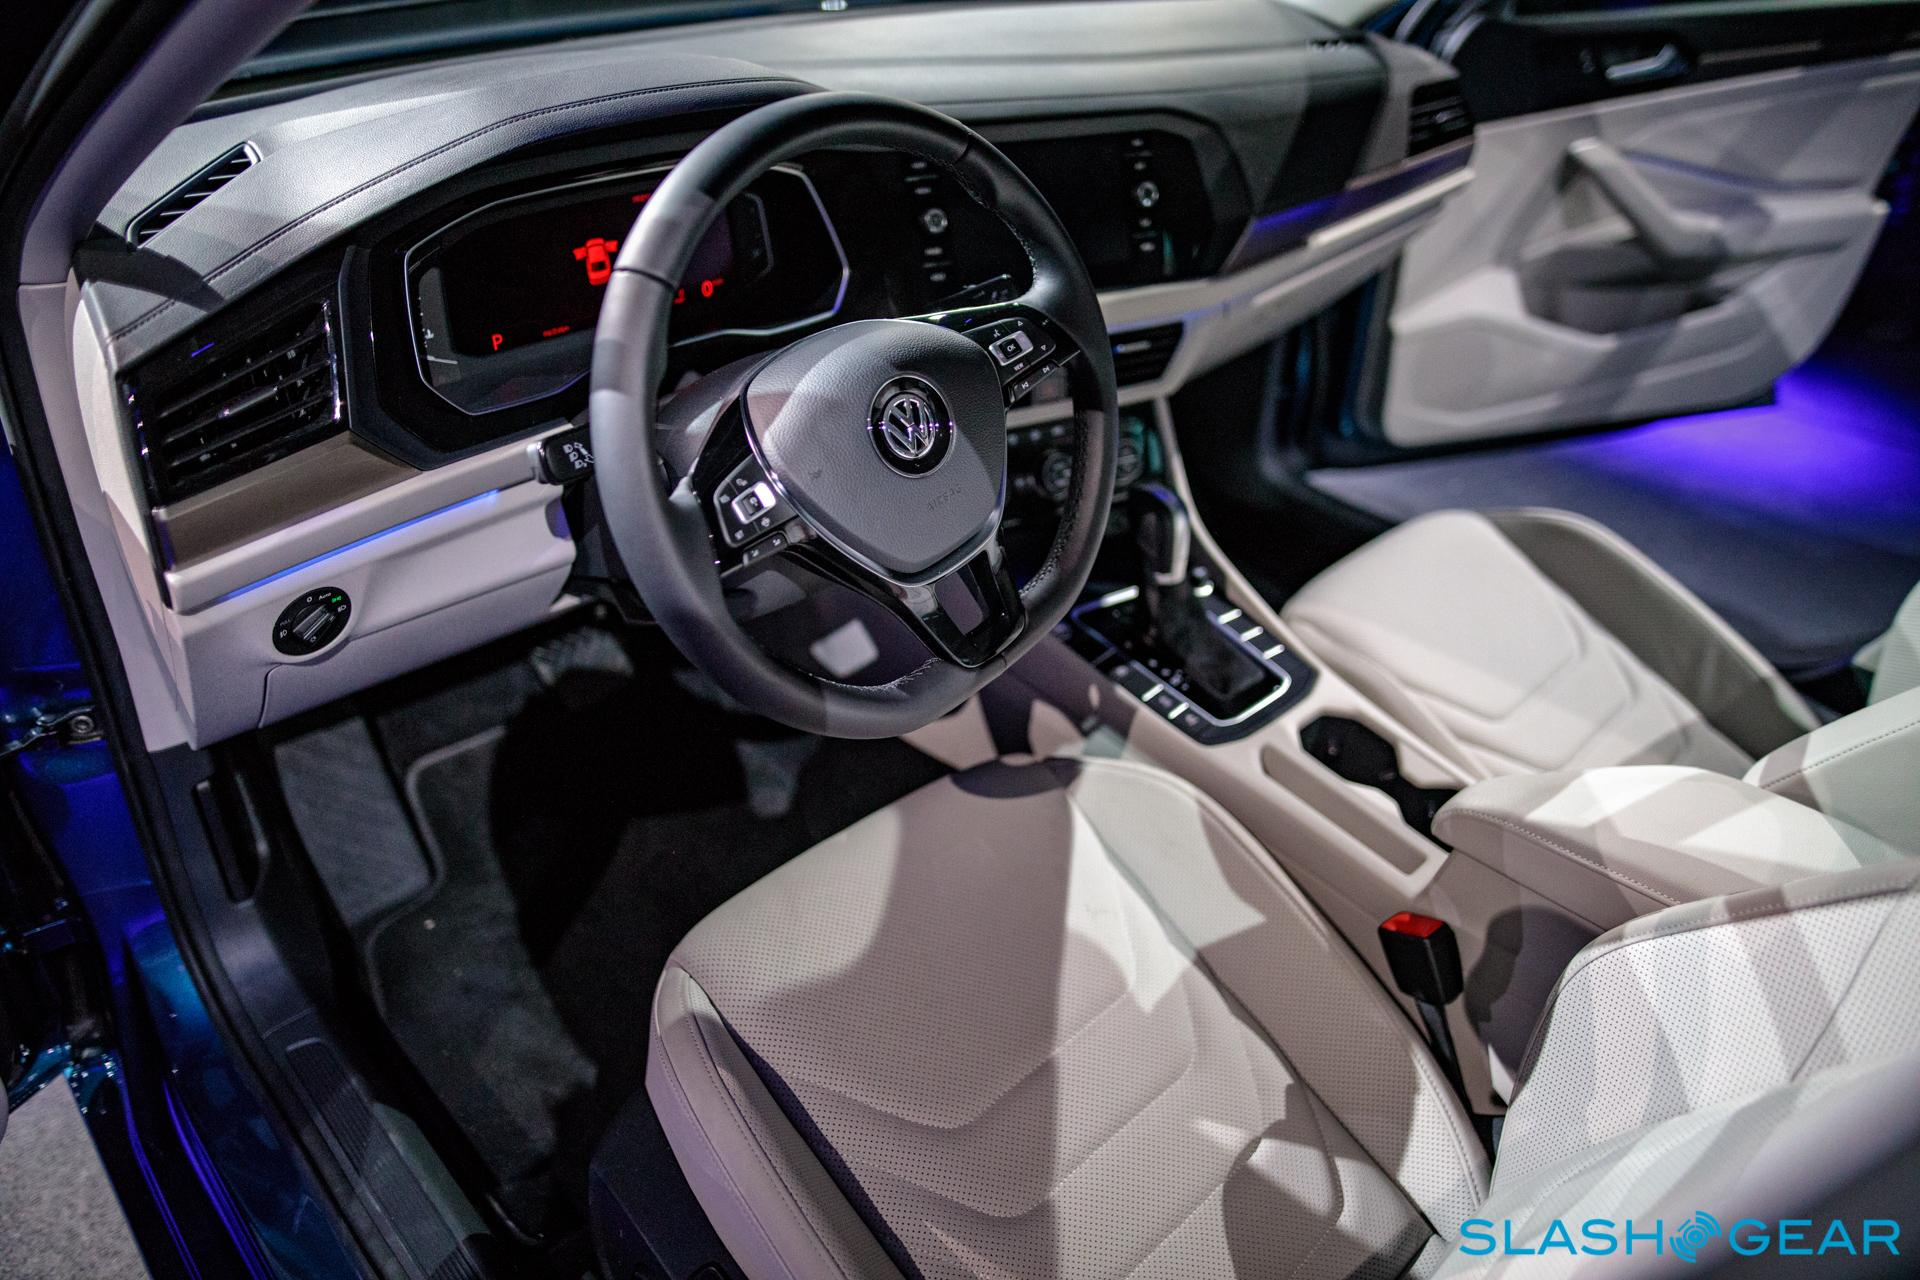 2019 Vw Jetta Pricing Official These Are All The Trims Slashgear